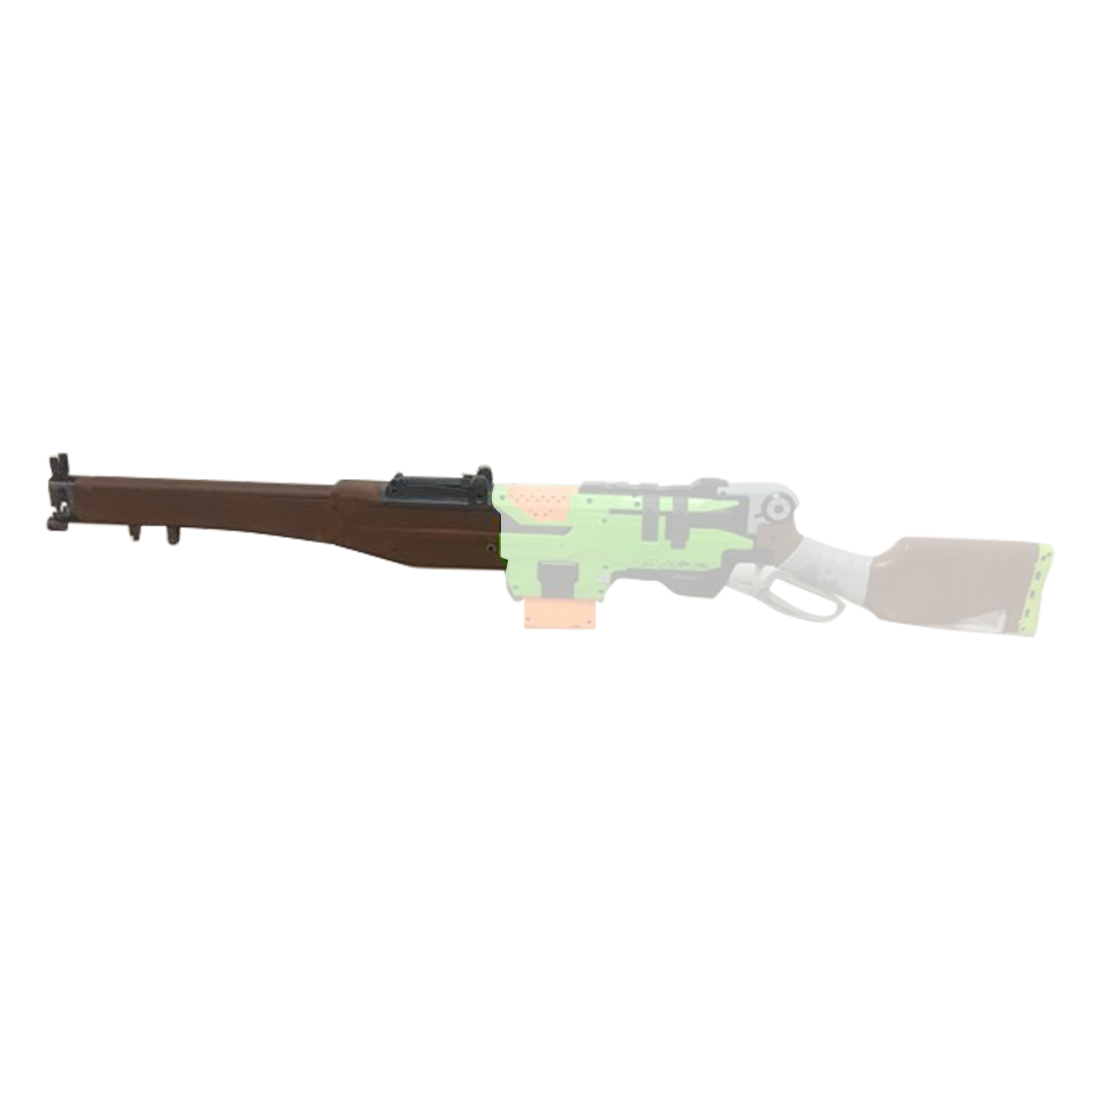 Surwish Military Tactical 3D Printing Long Barrels for Nerf Zombie Strike SlingFire Blaster - Brown maliang appearance modification 3d printing front tube a 3 0 decoration part for nerf zombie strike doublestrike blaster